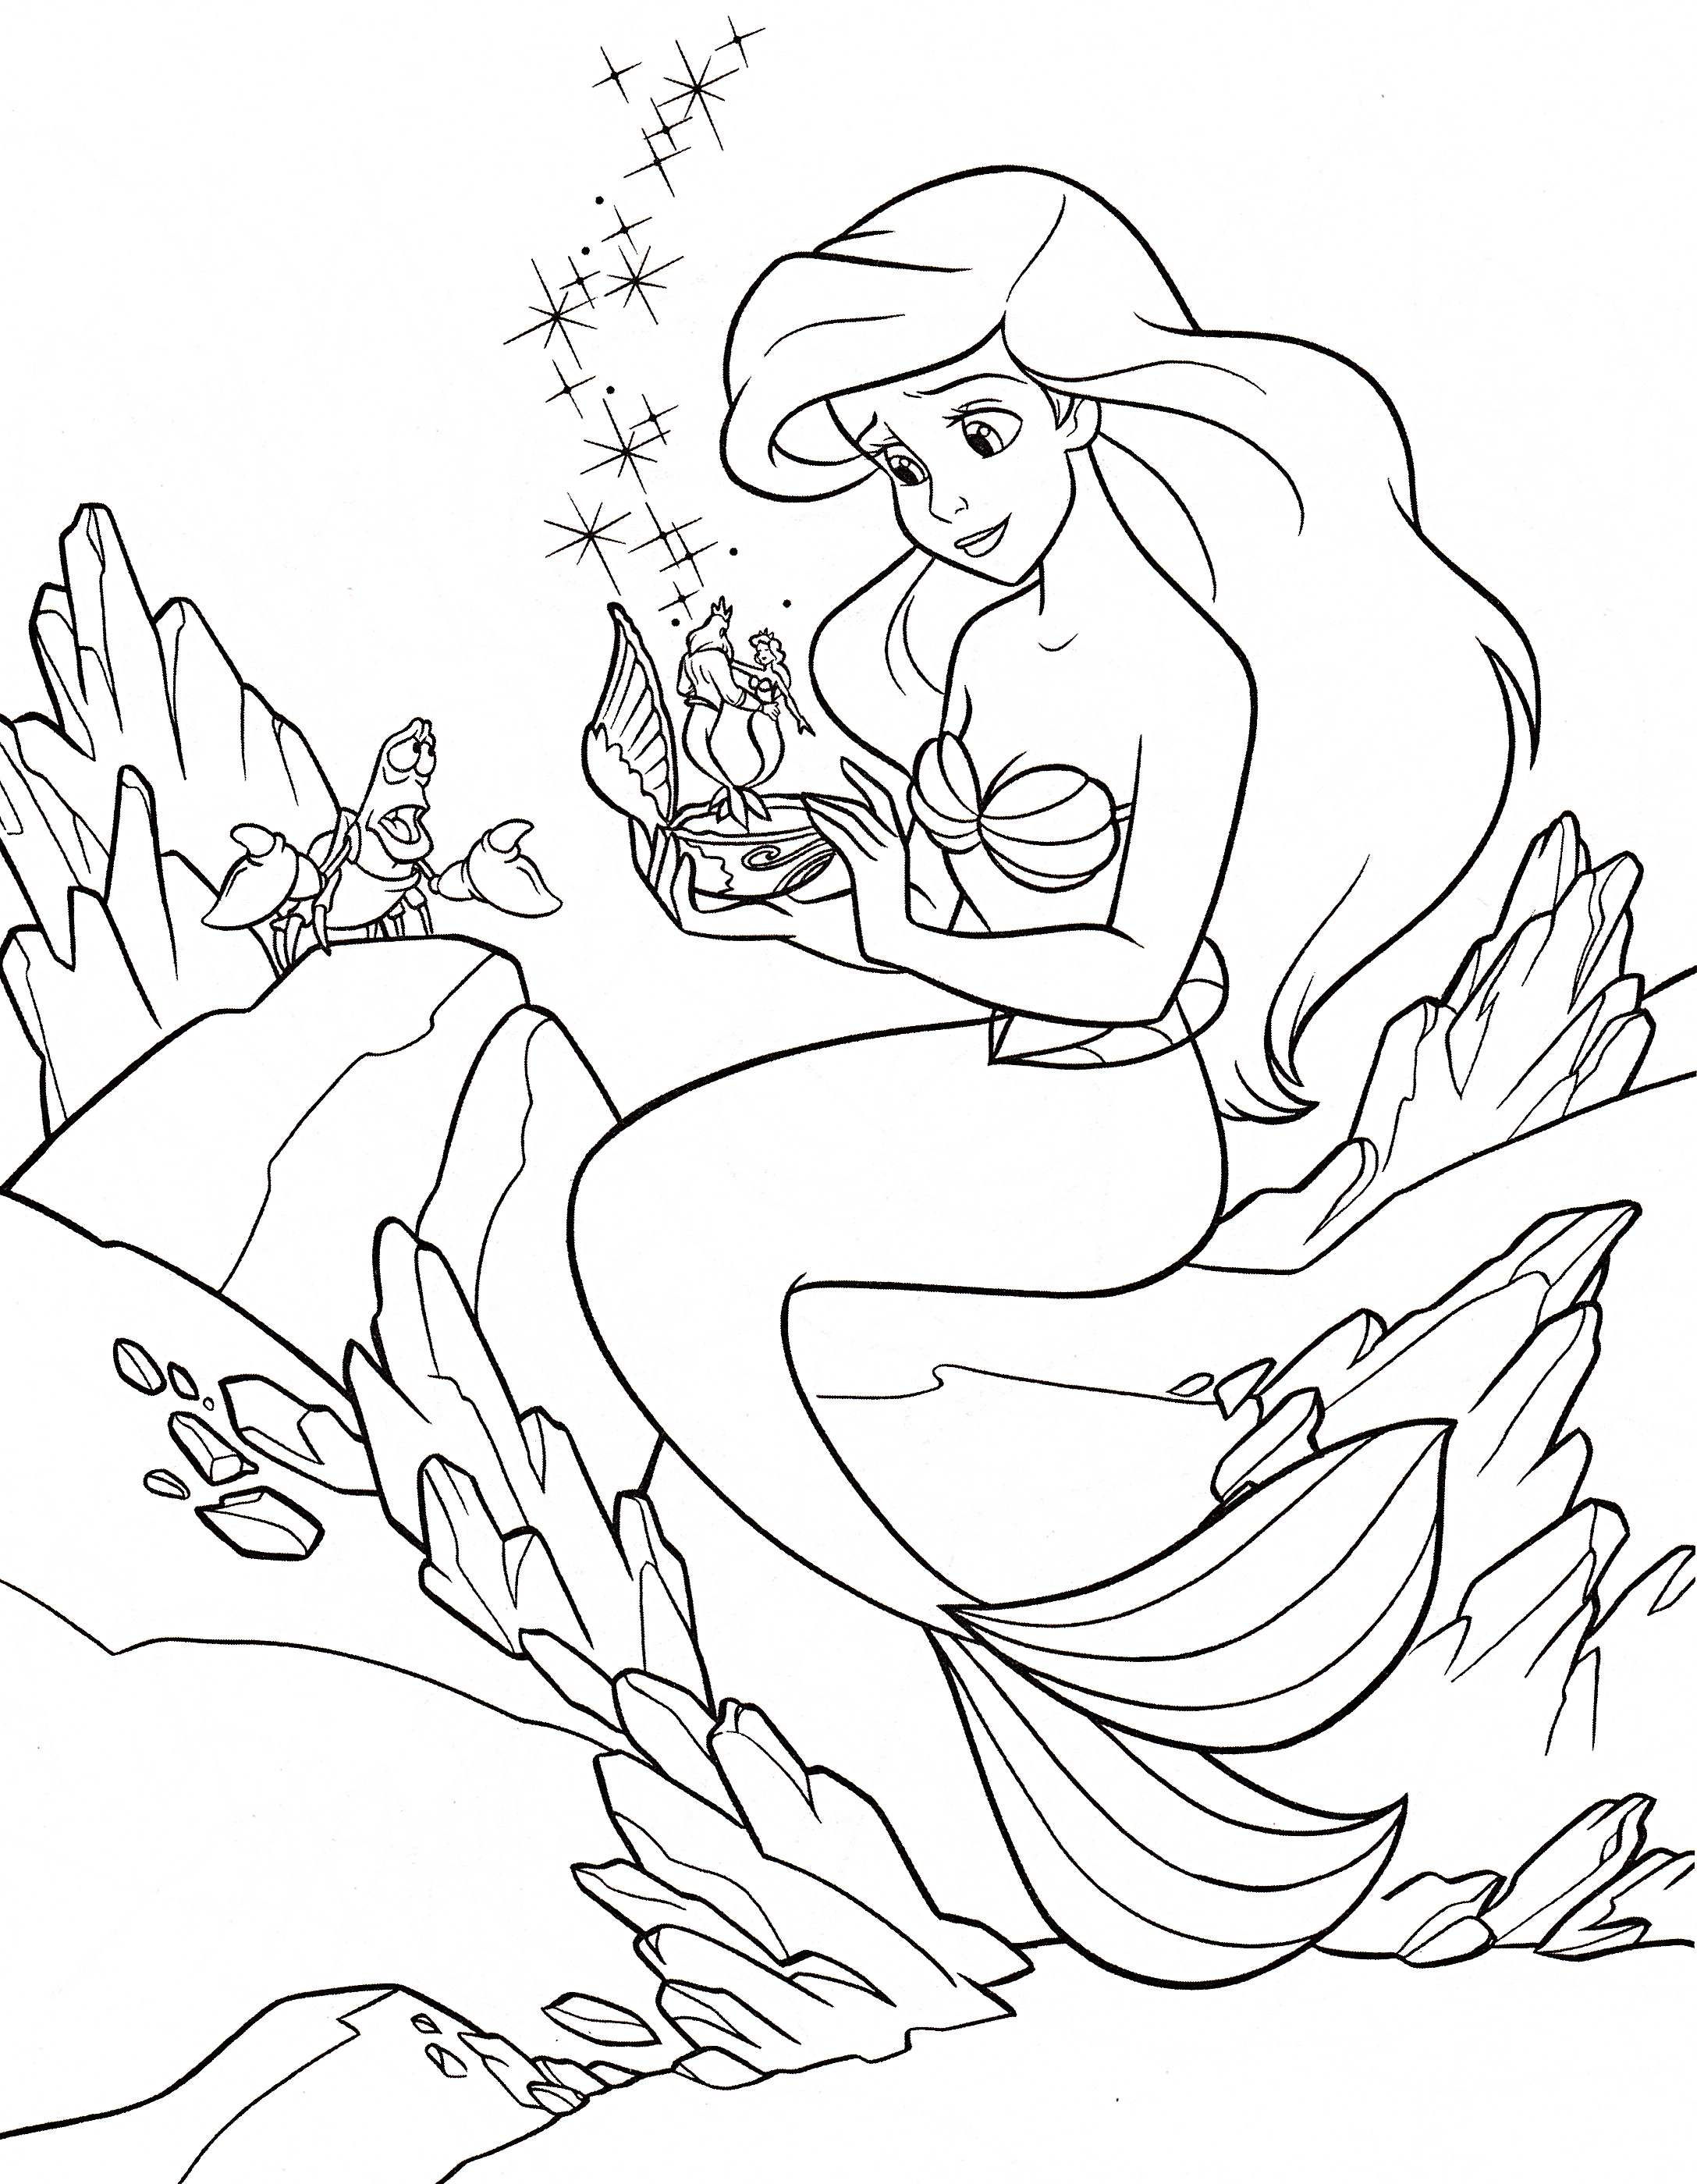 Walt Disney Coloring Pages Sebastian Princess Ariel Baby Disney Princess Characters Coloring Pages